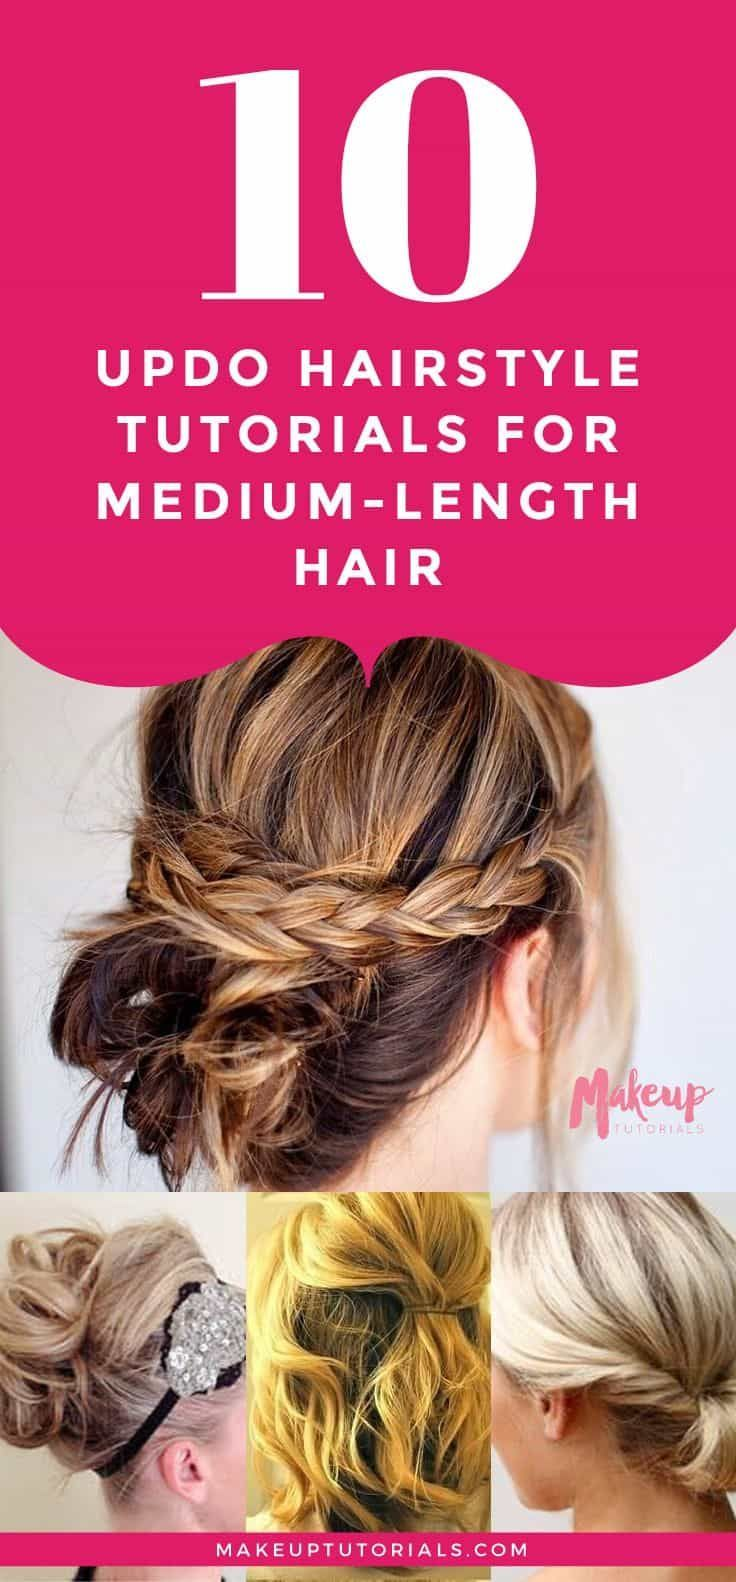 Hairstyle tutorials updo hairstyle tutorials for mediumlength